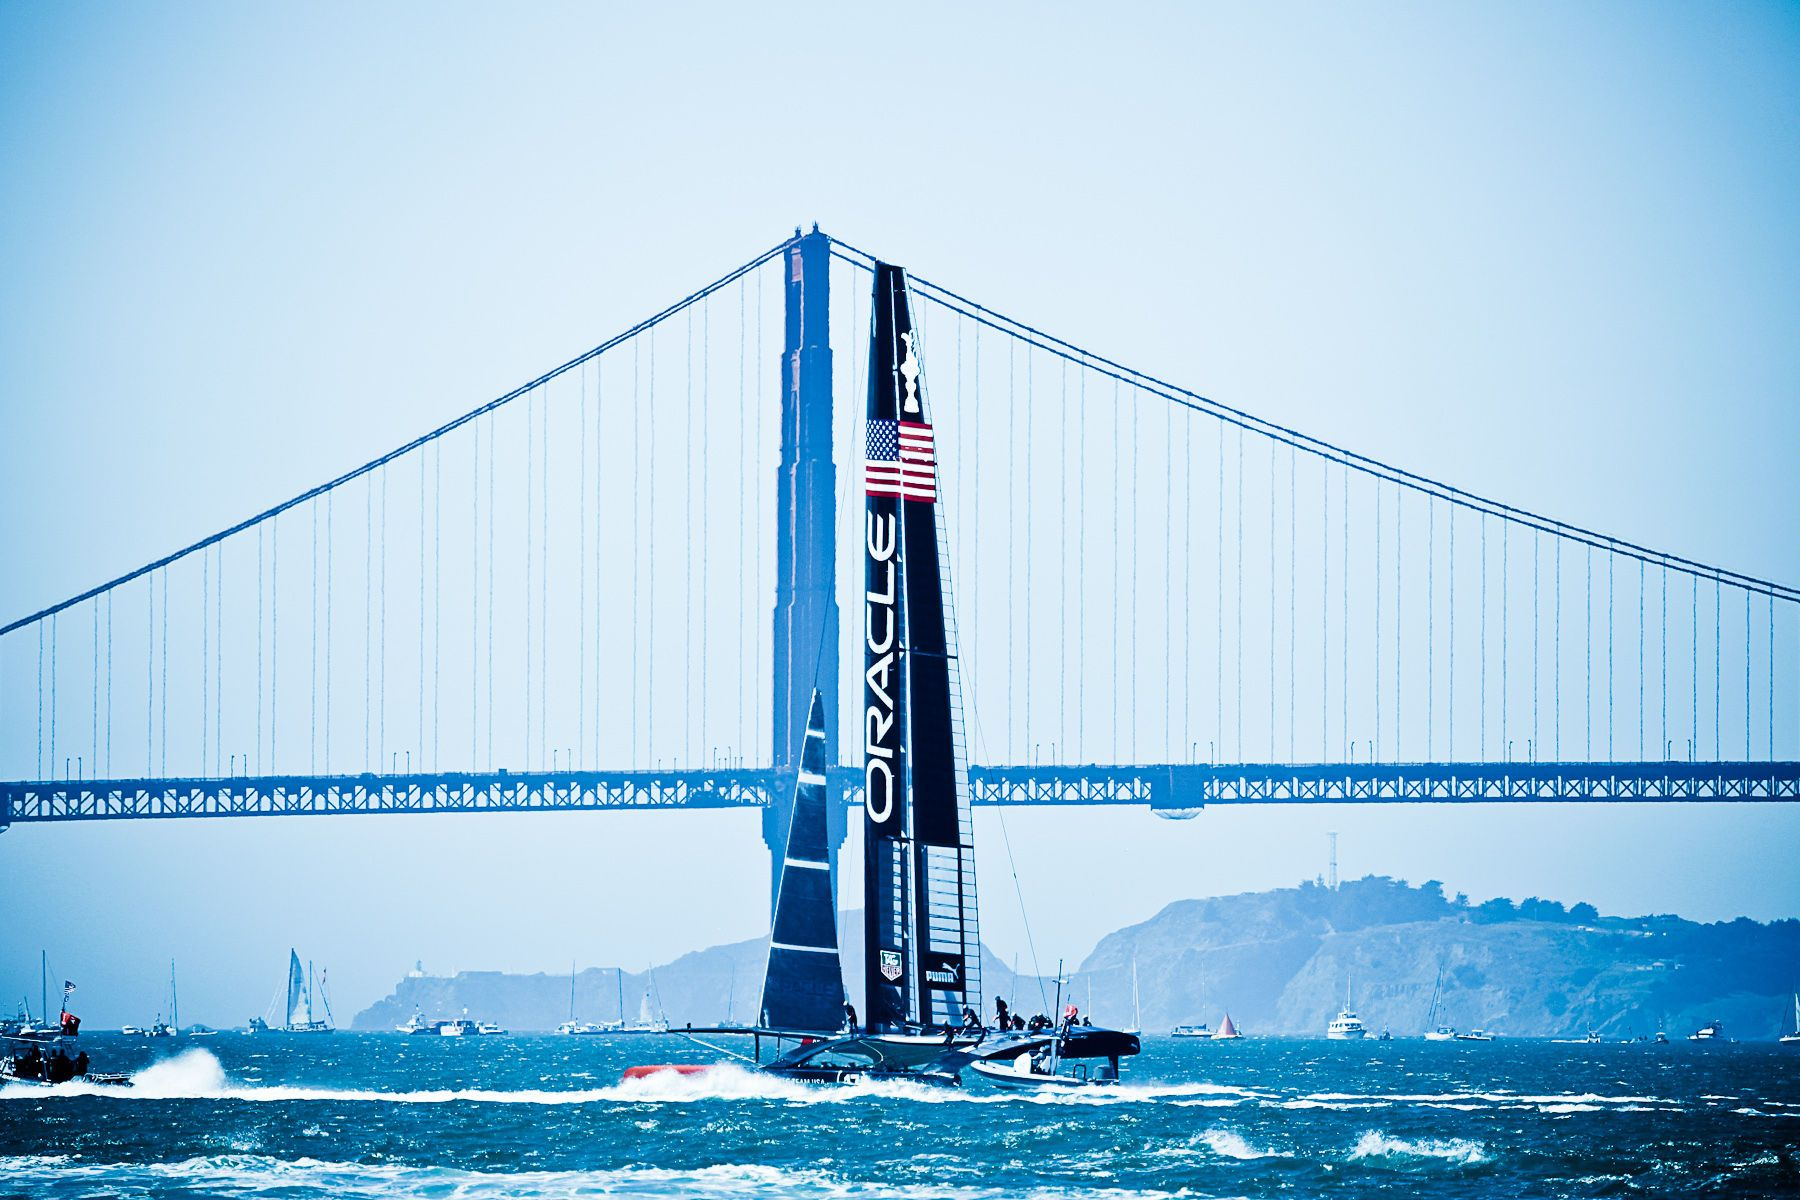 Silicon Valley Sailing-America's Cup